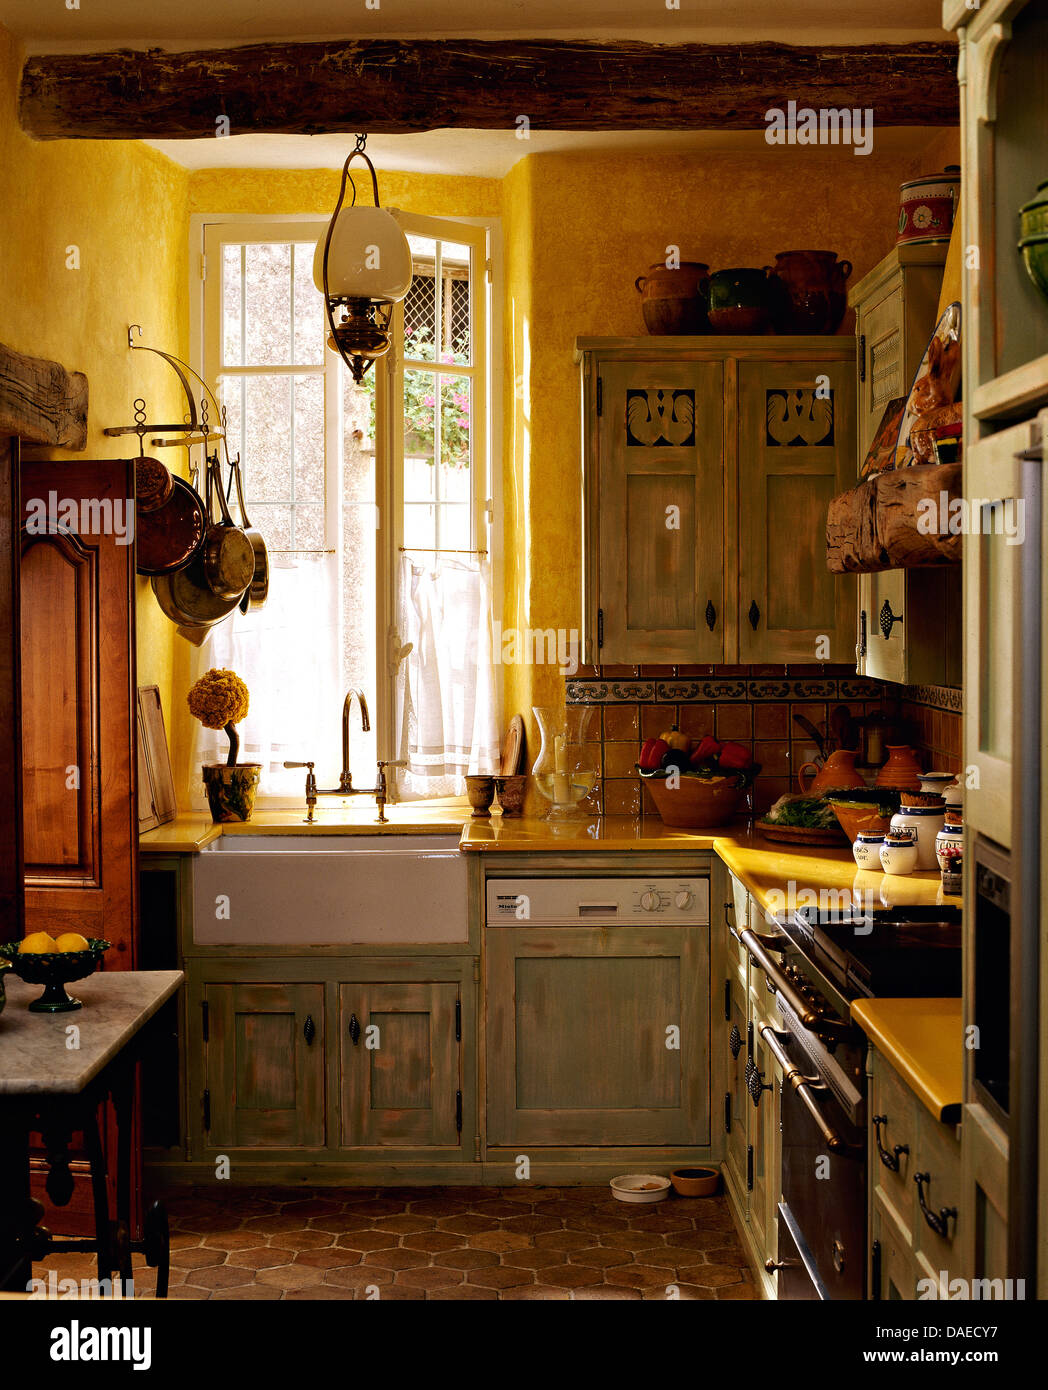 French country kitchen green - Pale Gray Green Distressed Cupboards In Yellow French Country Kitchen With Terracotta Tiled Floor And Belfast Sink